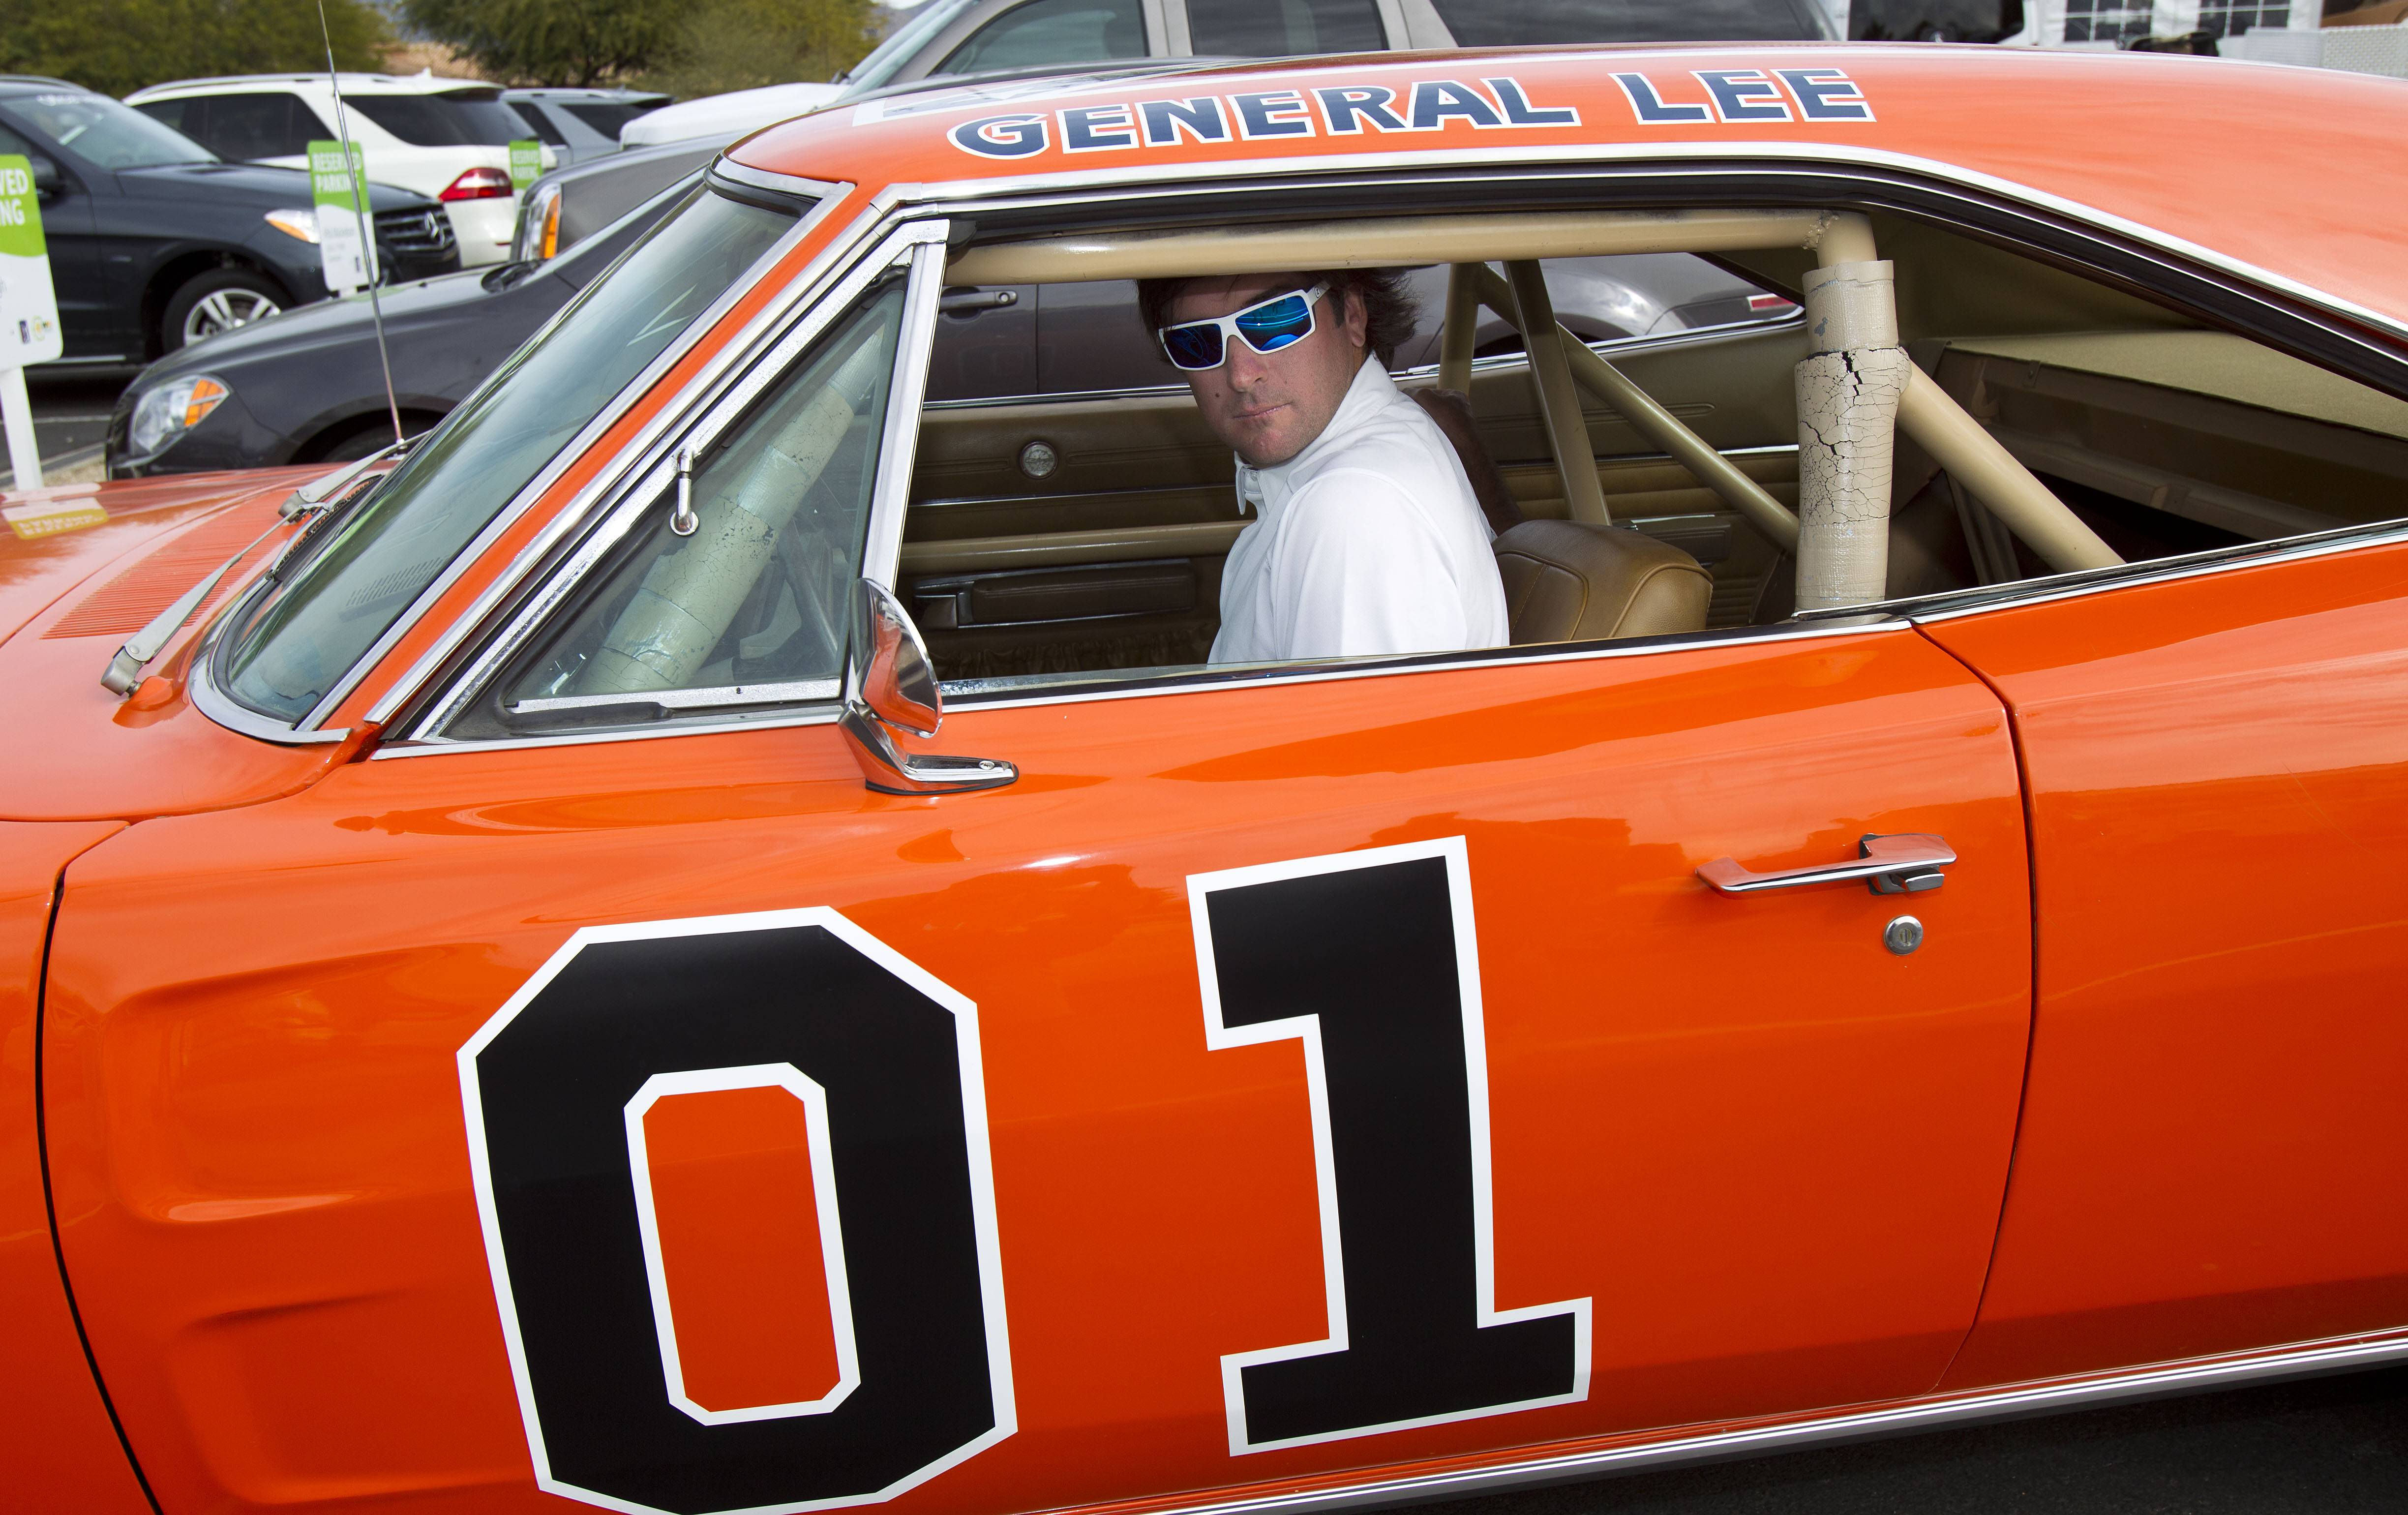 Golfer Bubba Watson says he wants to paint over the Confederate flag on the first General Lee, which he owns.